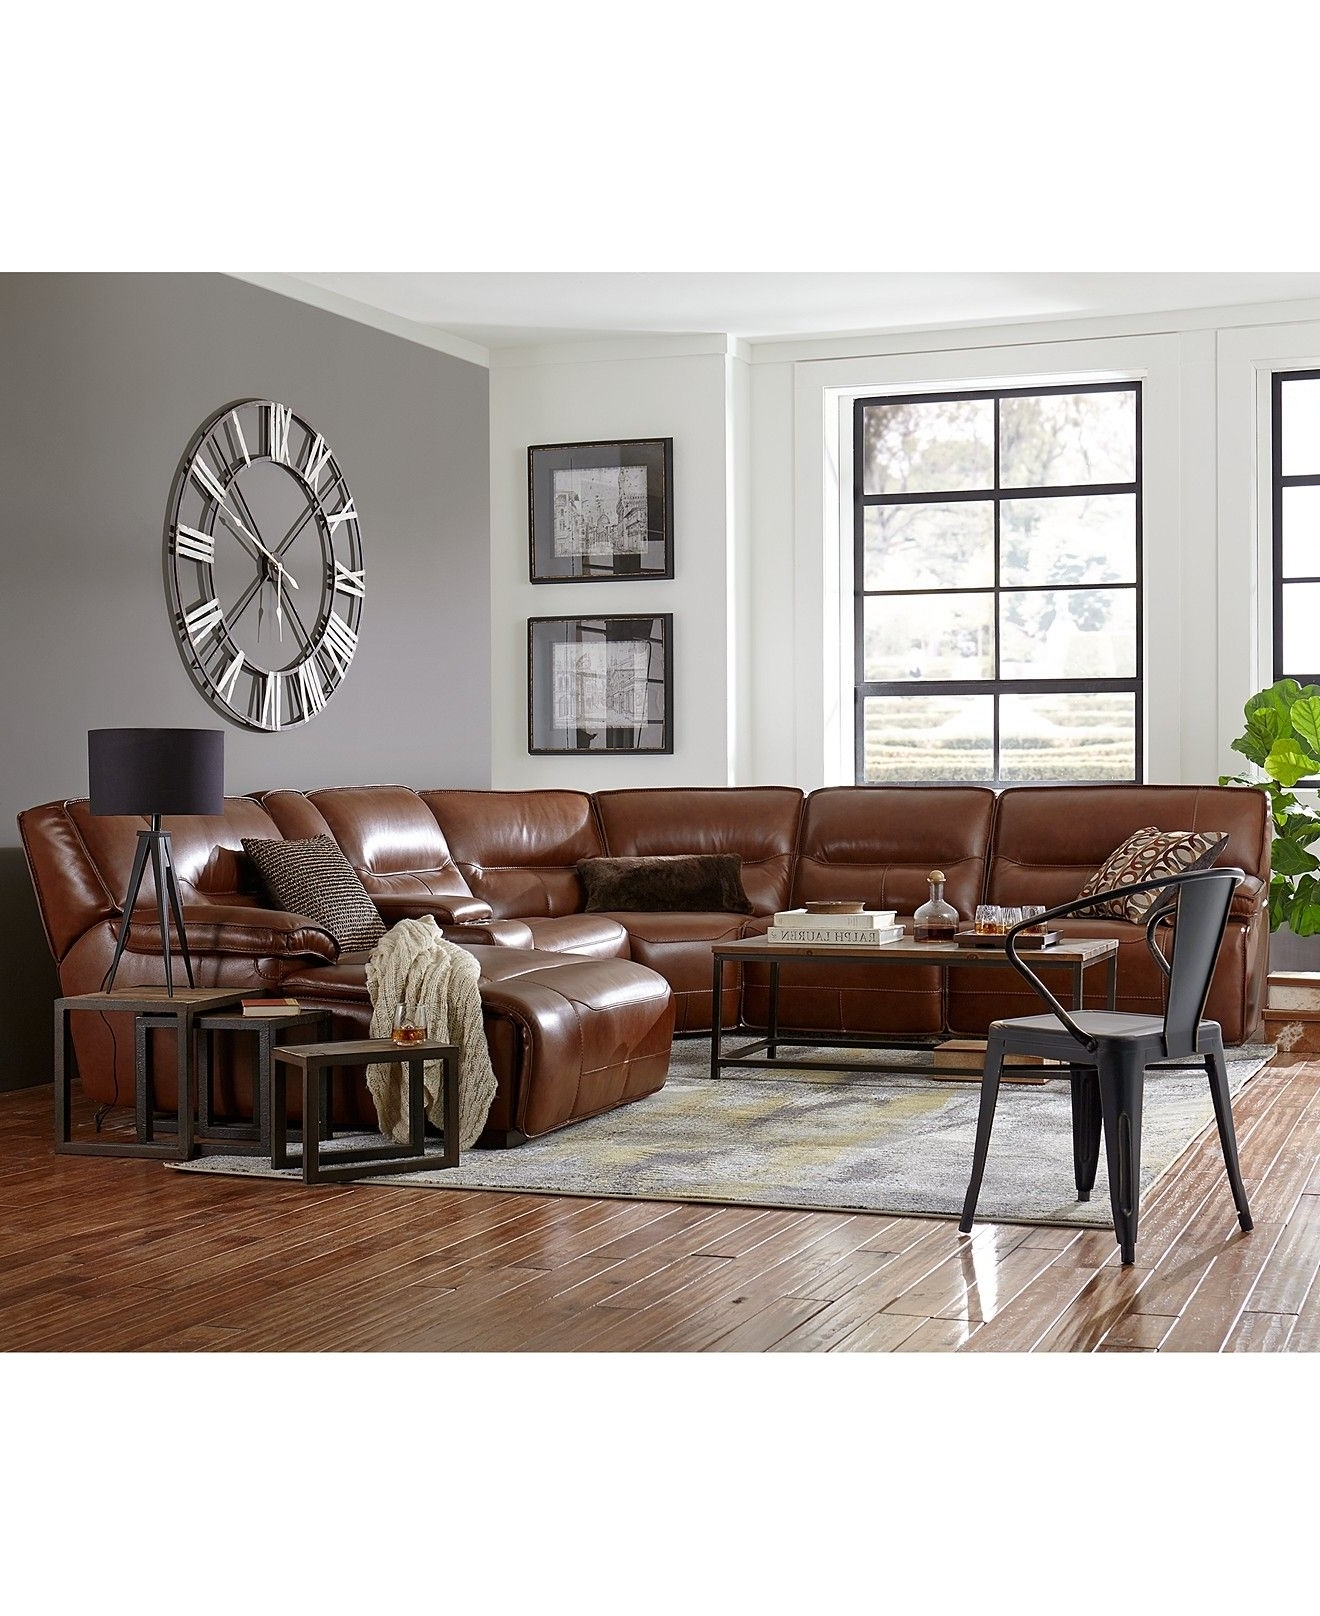 Widely Used Closeout! Beckett Leather Power Reclining Sectional Sofa Inside Macys Leather Sectional Sofas (View 6 of 15)